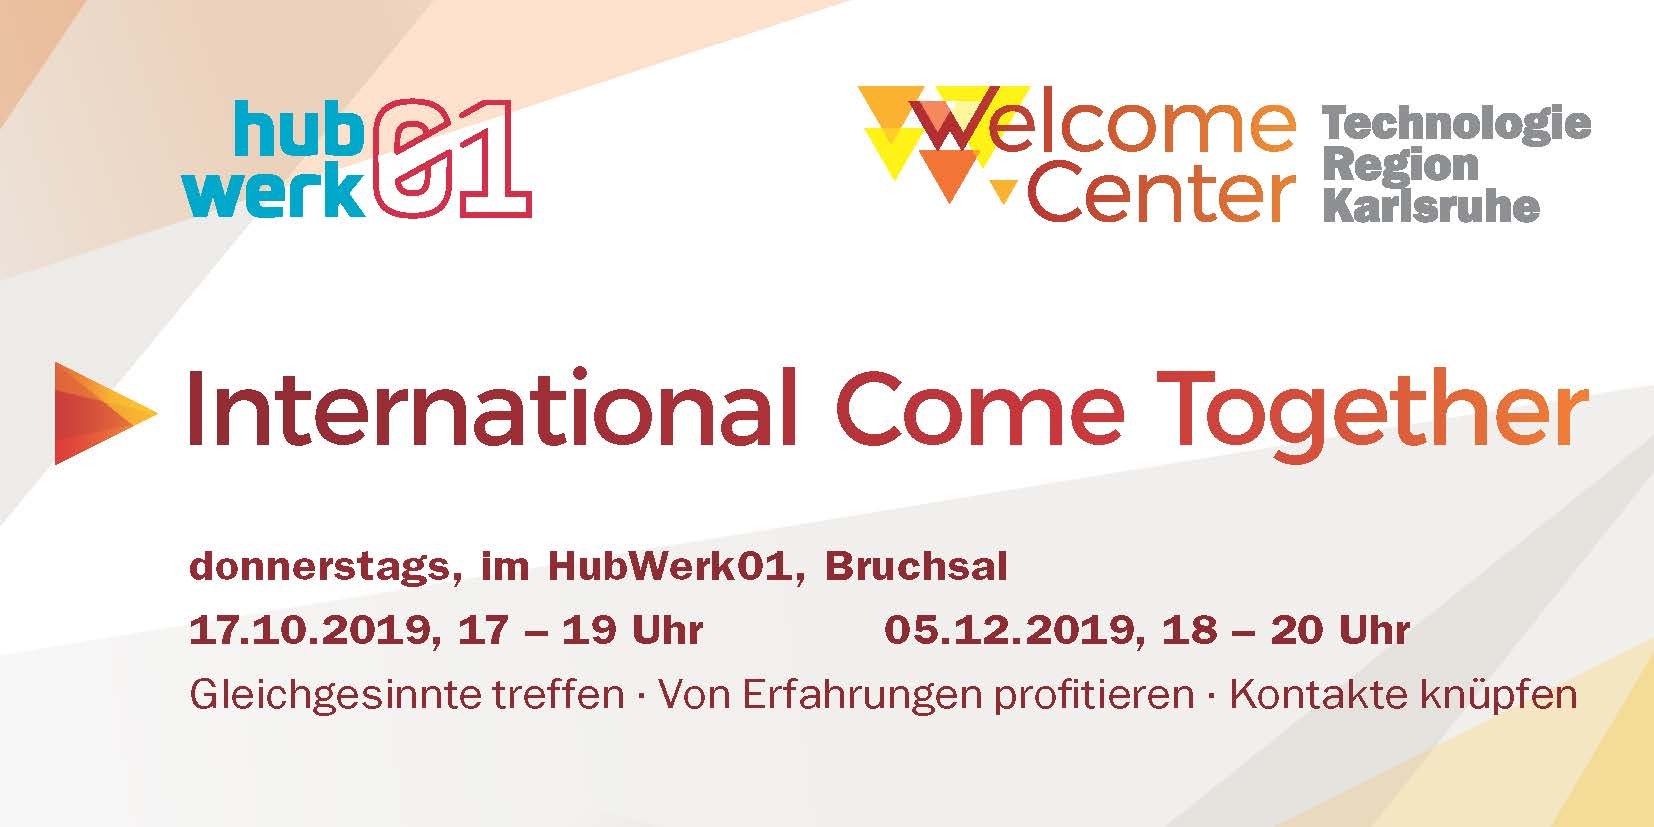 "Bild von Flyer ""International Come Together im HubWerk01 in Bruchsal"" deutsch (Bildquelle: TechnologieRegion Karlsruhe)"